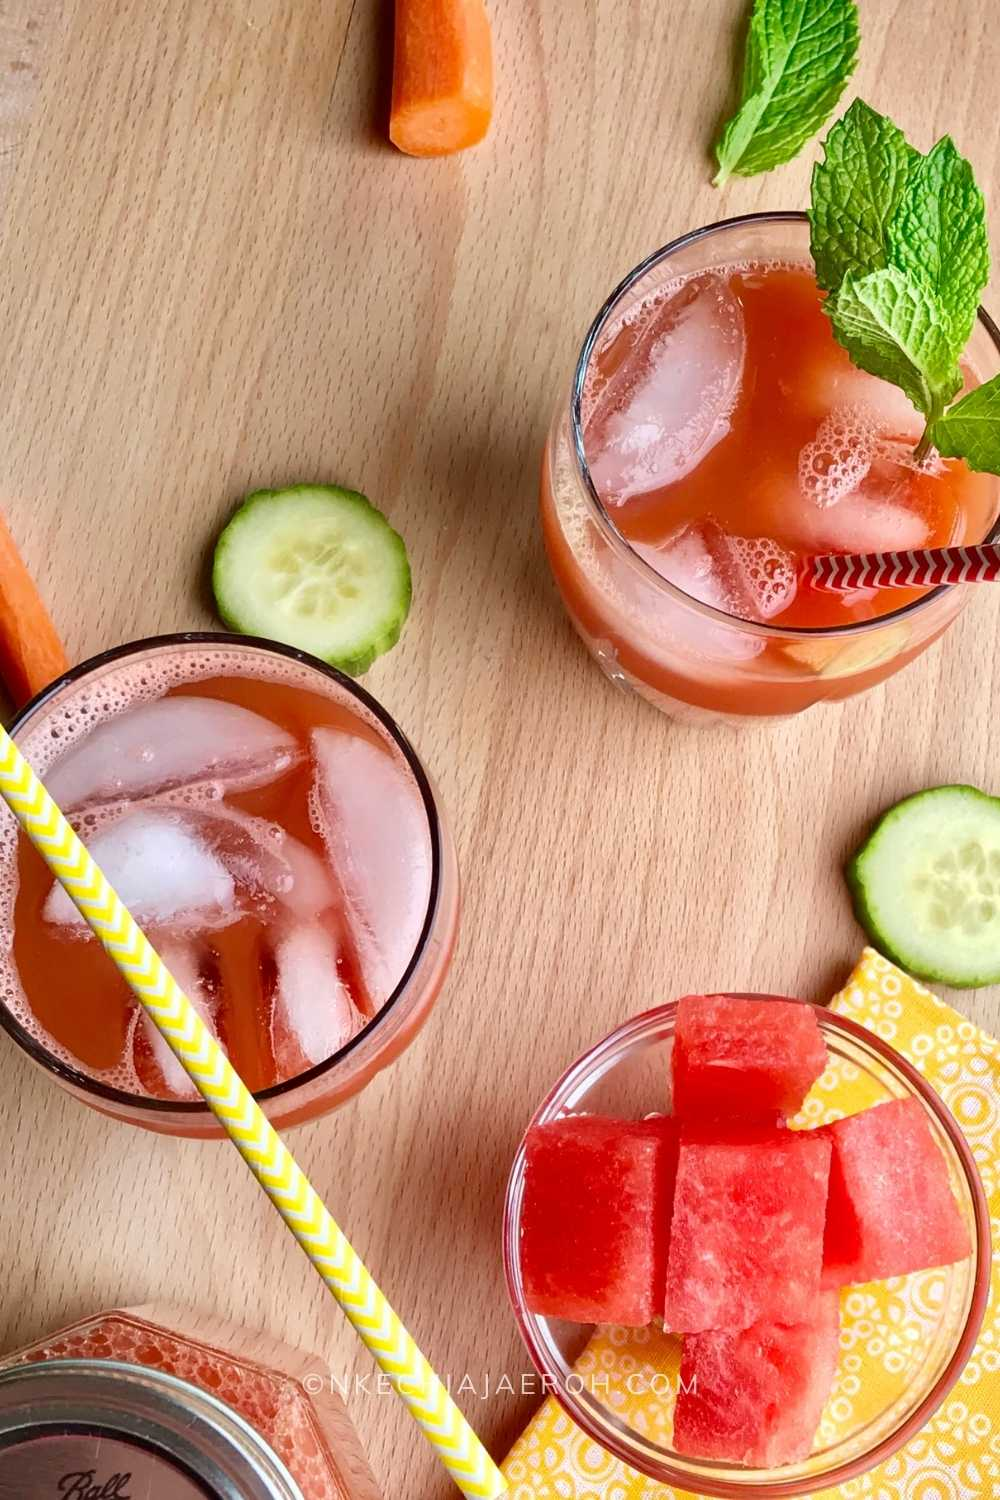 This Minty watermelon carrot drink is fresh, nutritious and easy to make! This is a summer delight you don't need you need! The freshness of mint makes this drink all worth it! #Carrot #watermelon #Healthyjuice #juice #cucumber